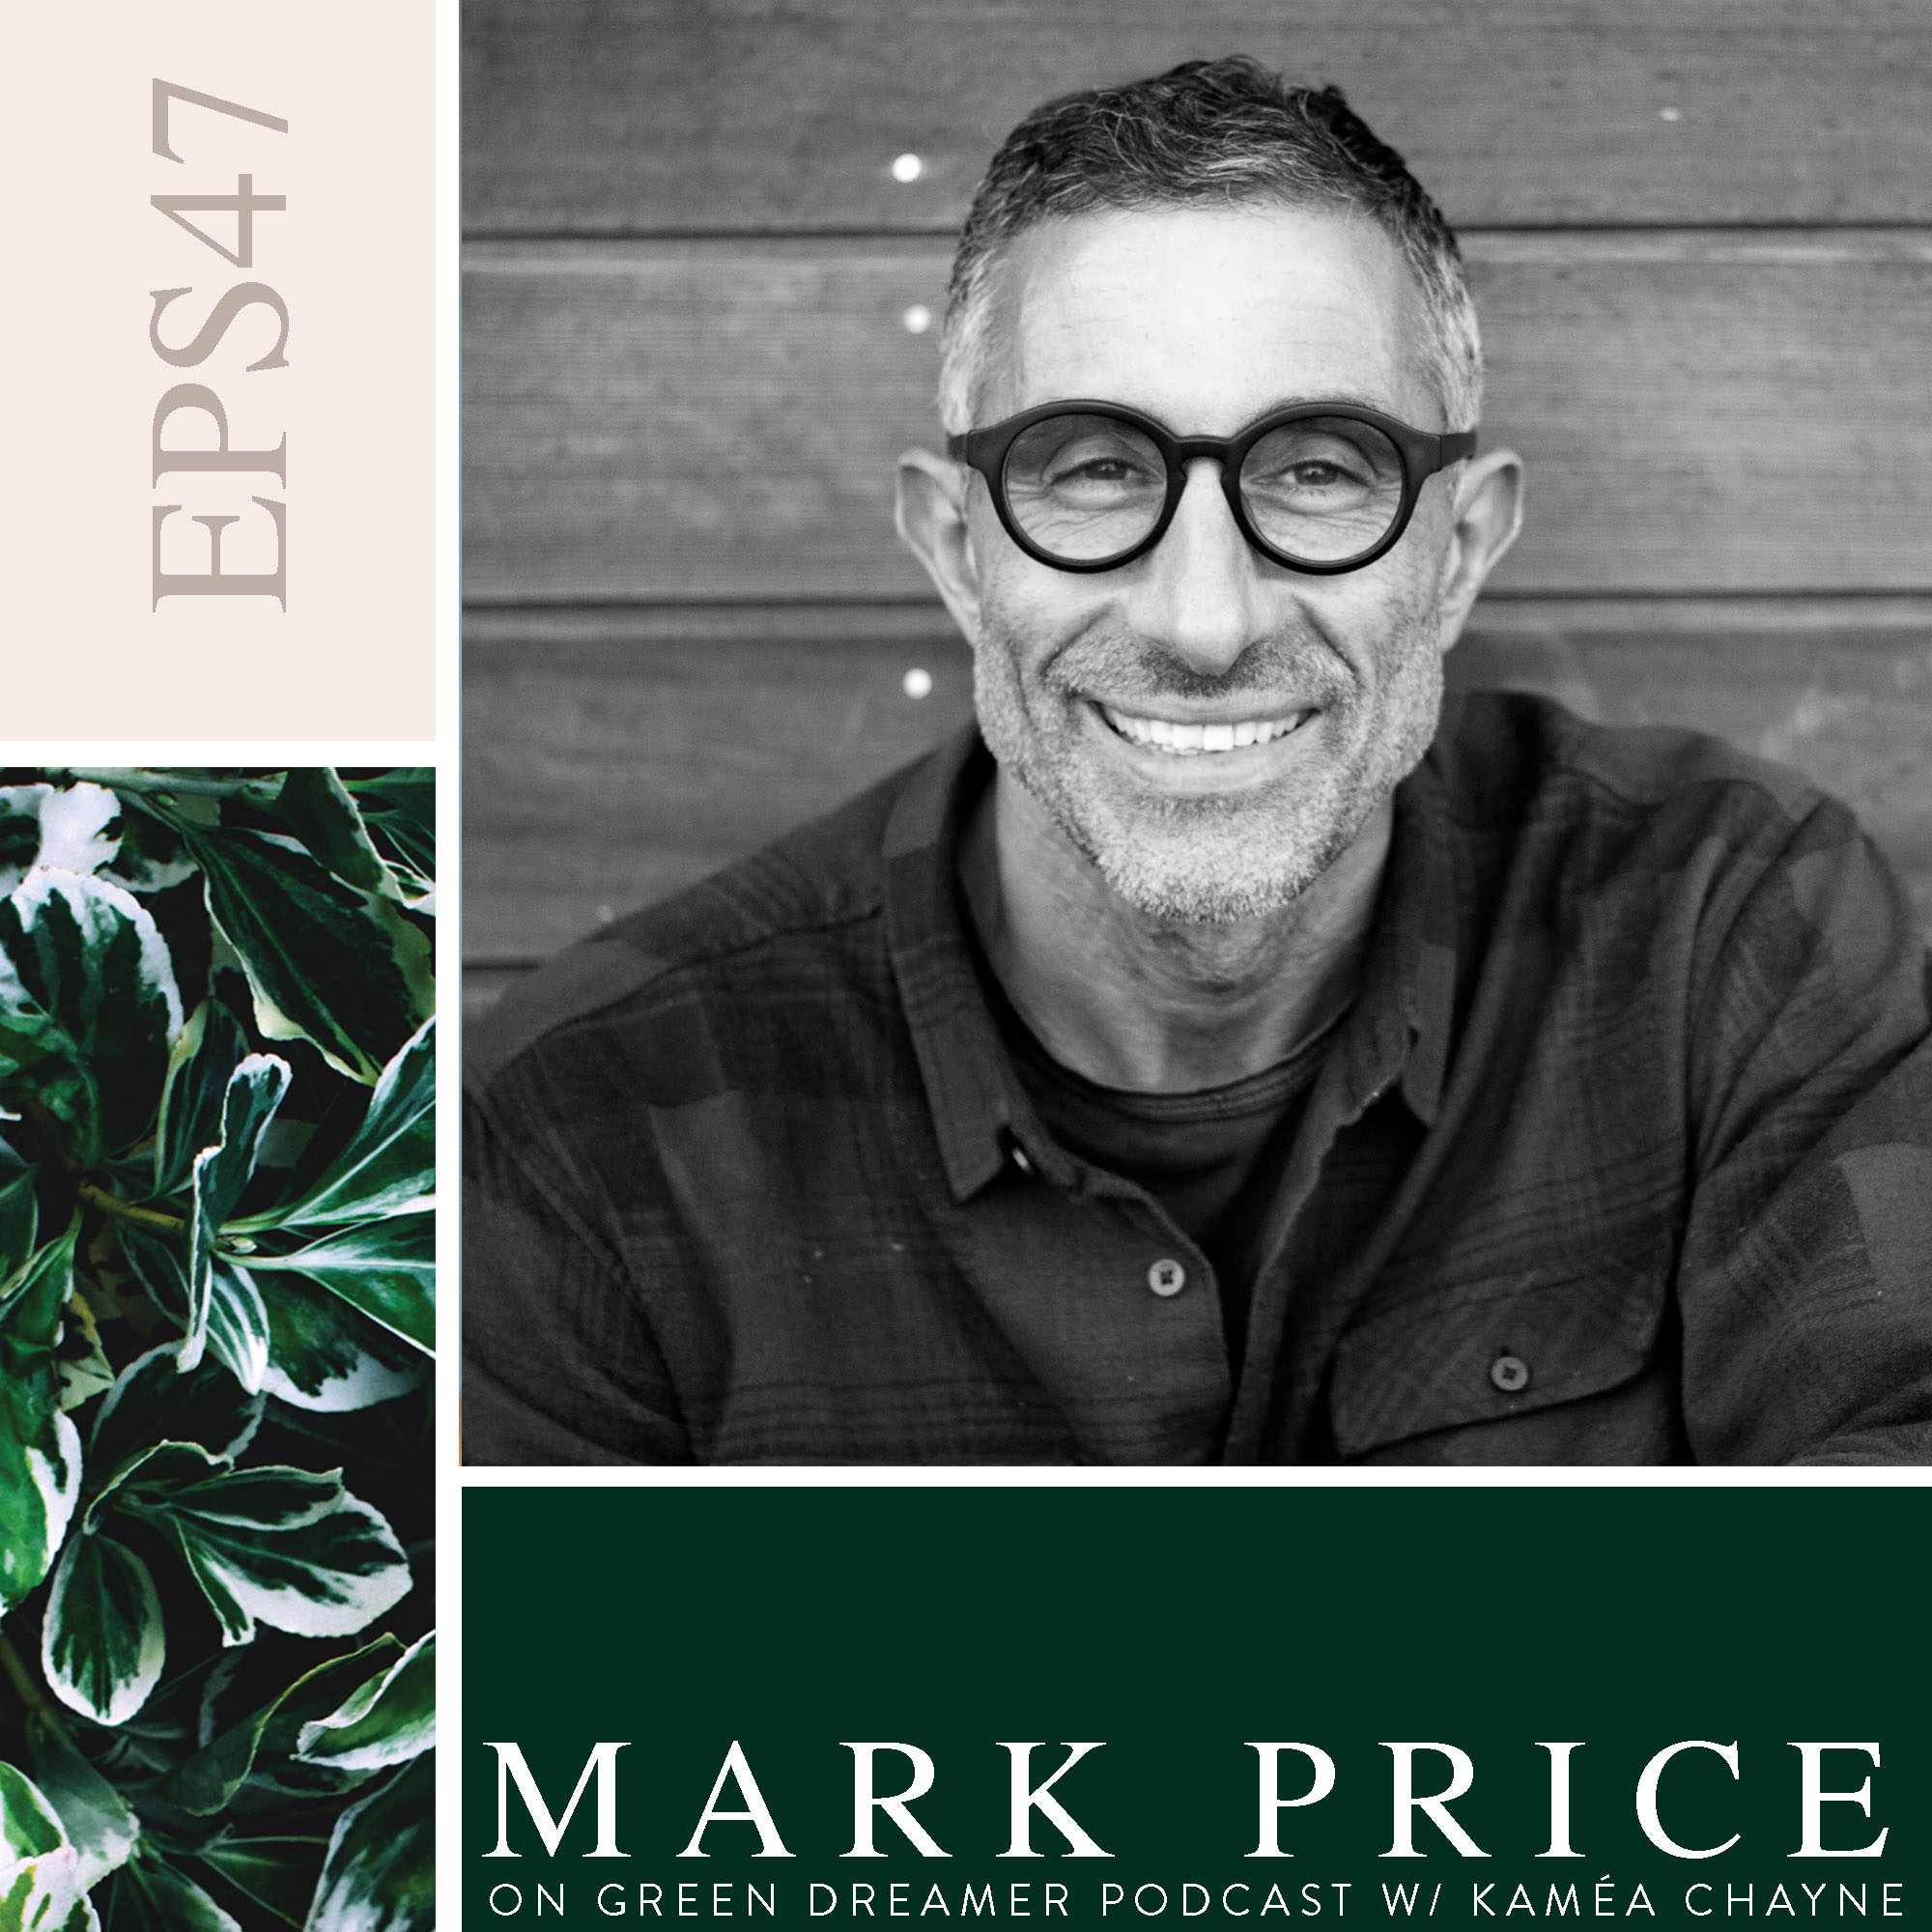 47) BW Mark-Price-of-Firewire-Surfboards-talks-sustainability-on-Green-Dreamer-Podcast-with-Kaméa-Chayne.jpg